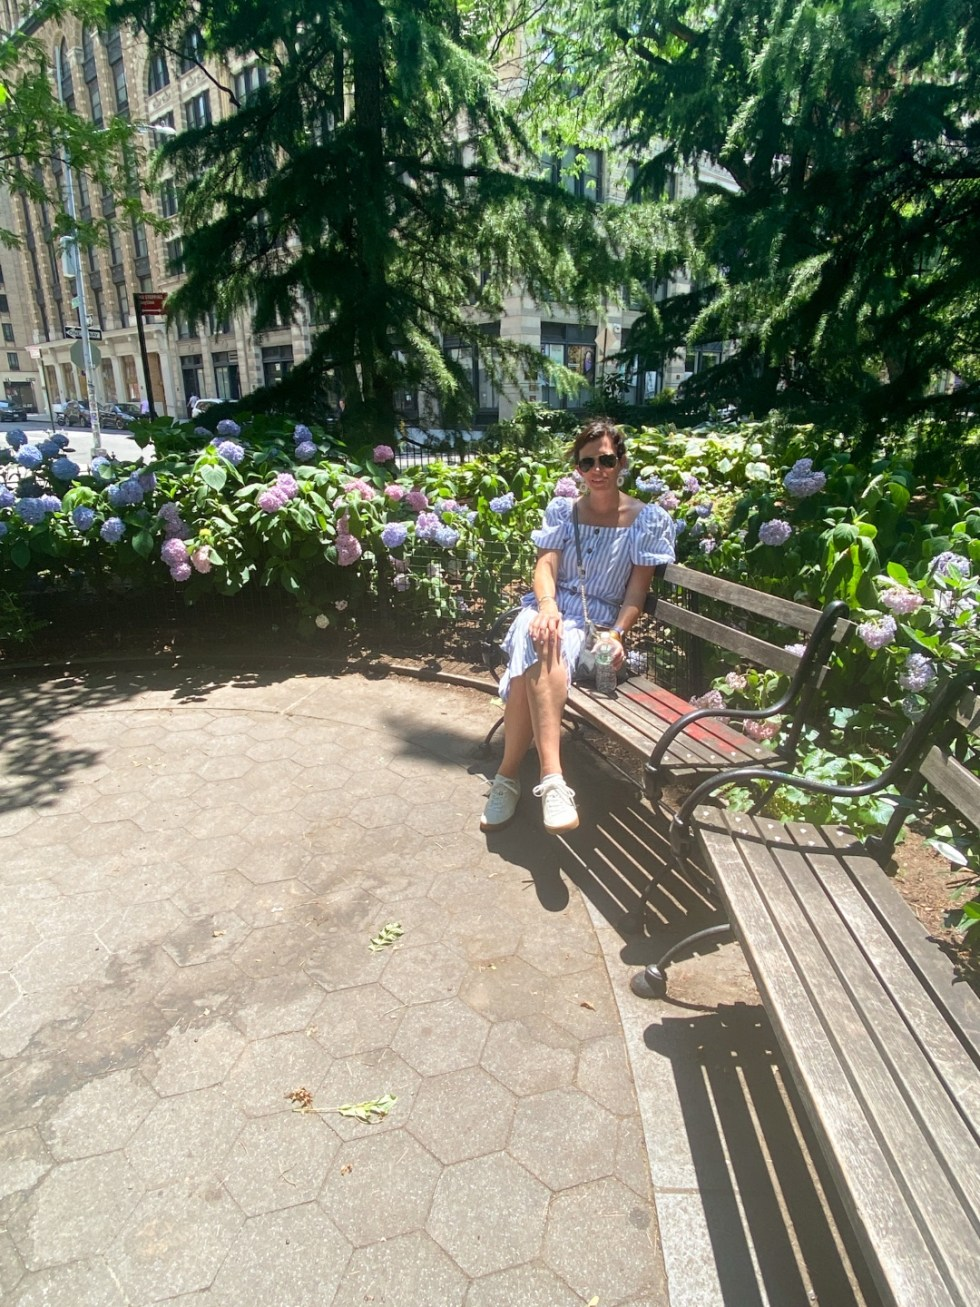 NYC Summer Weekend: Things to Do in NYC in the Summer - I'm Fixin' To - @imfixintoblog   NYC Summer Weekend by popular NC travel blog, I'm Fixin' To: image of a woman sitting on a wooden bench next to some purple hydrangea plants.